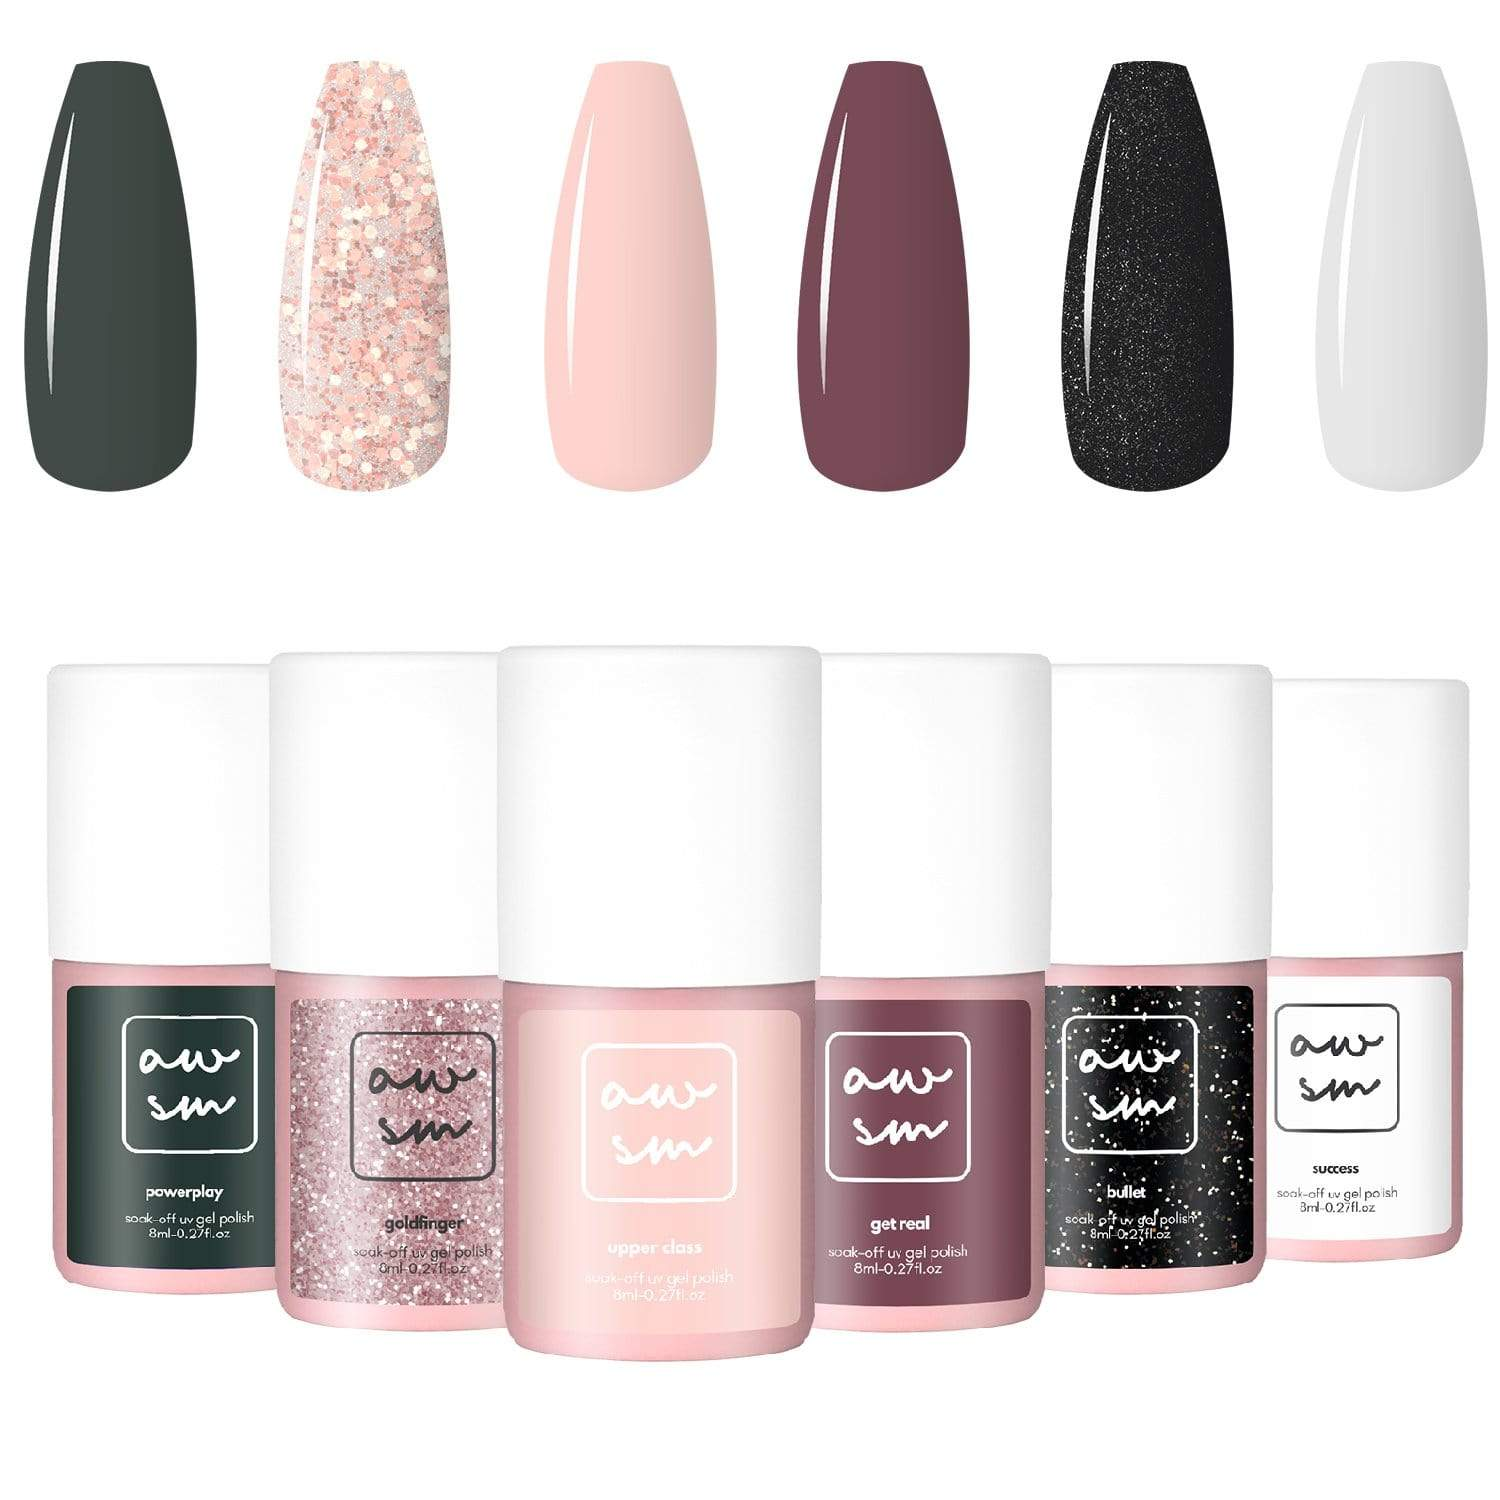 True Queen 6 Color Gel Polish Set